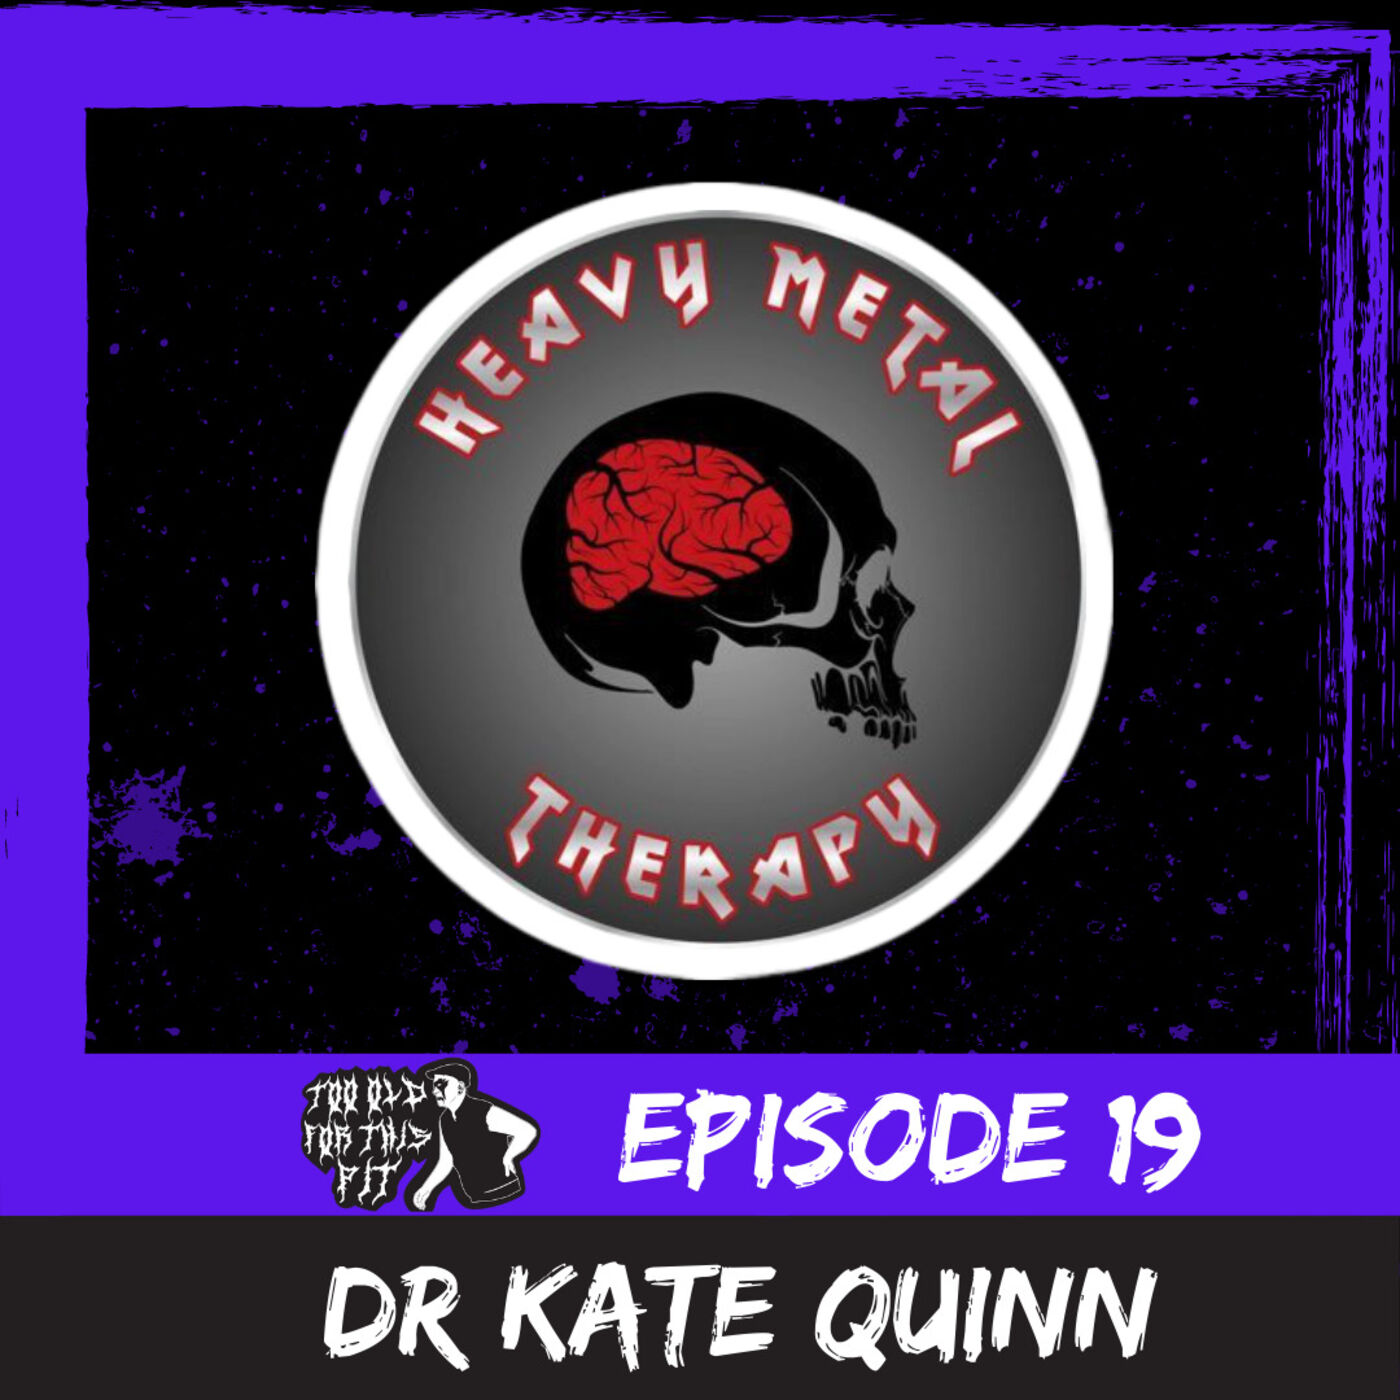 Episode 19 - Dr Kate Quinn (Heavy Metal Therapy)